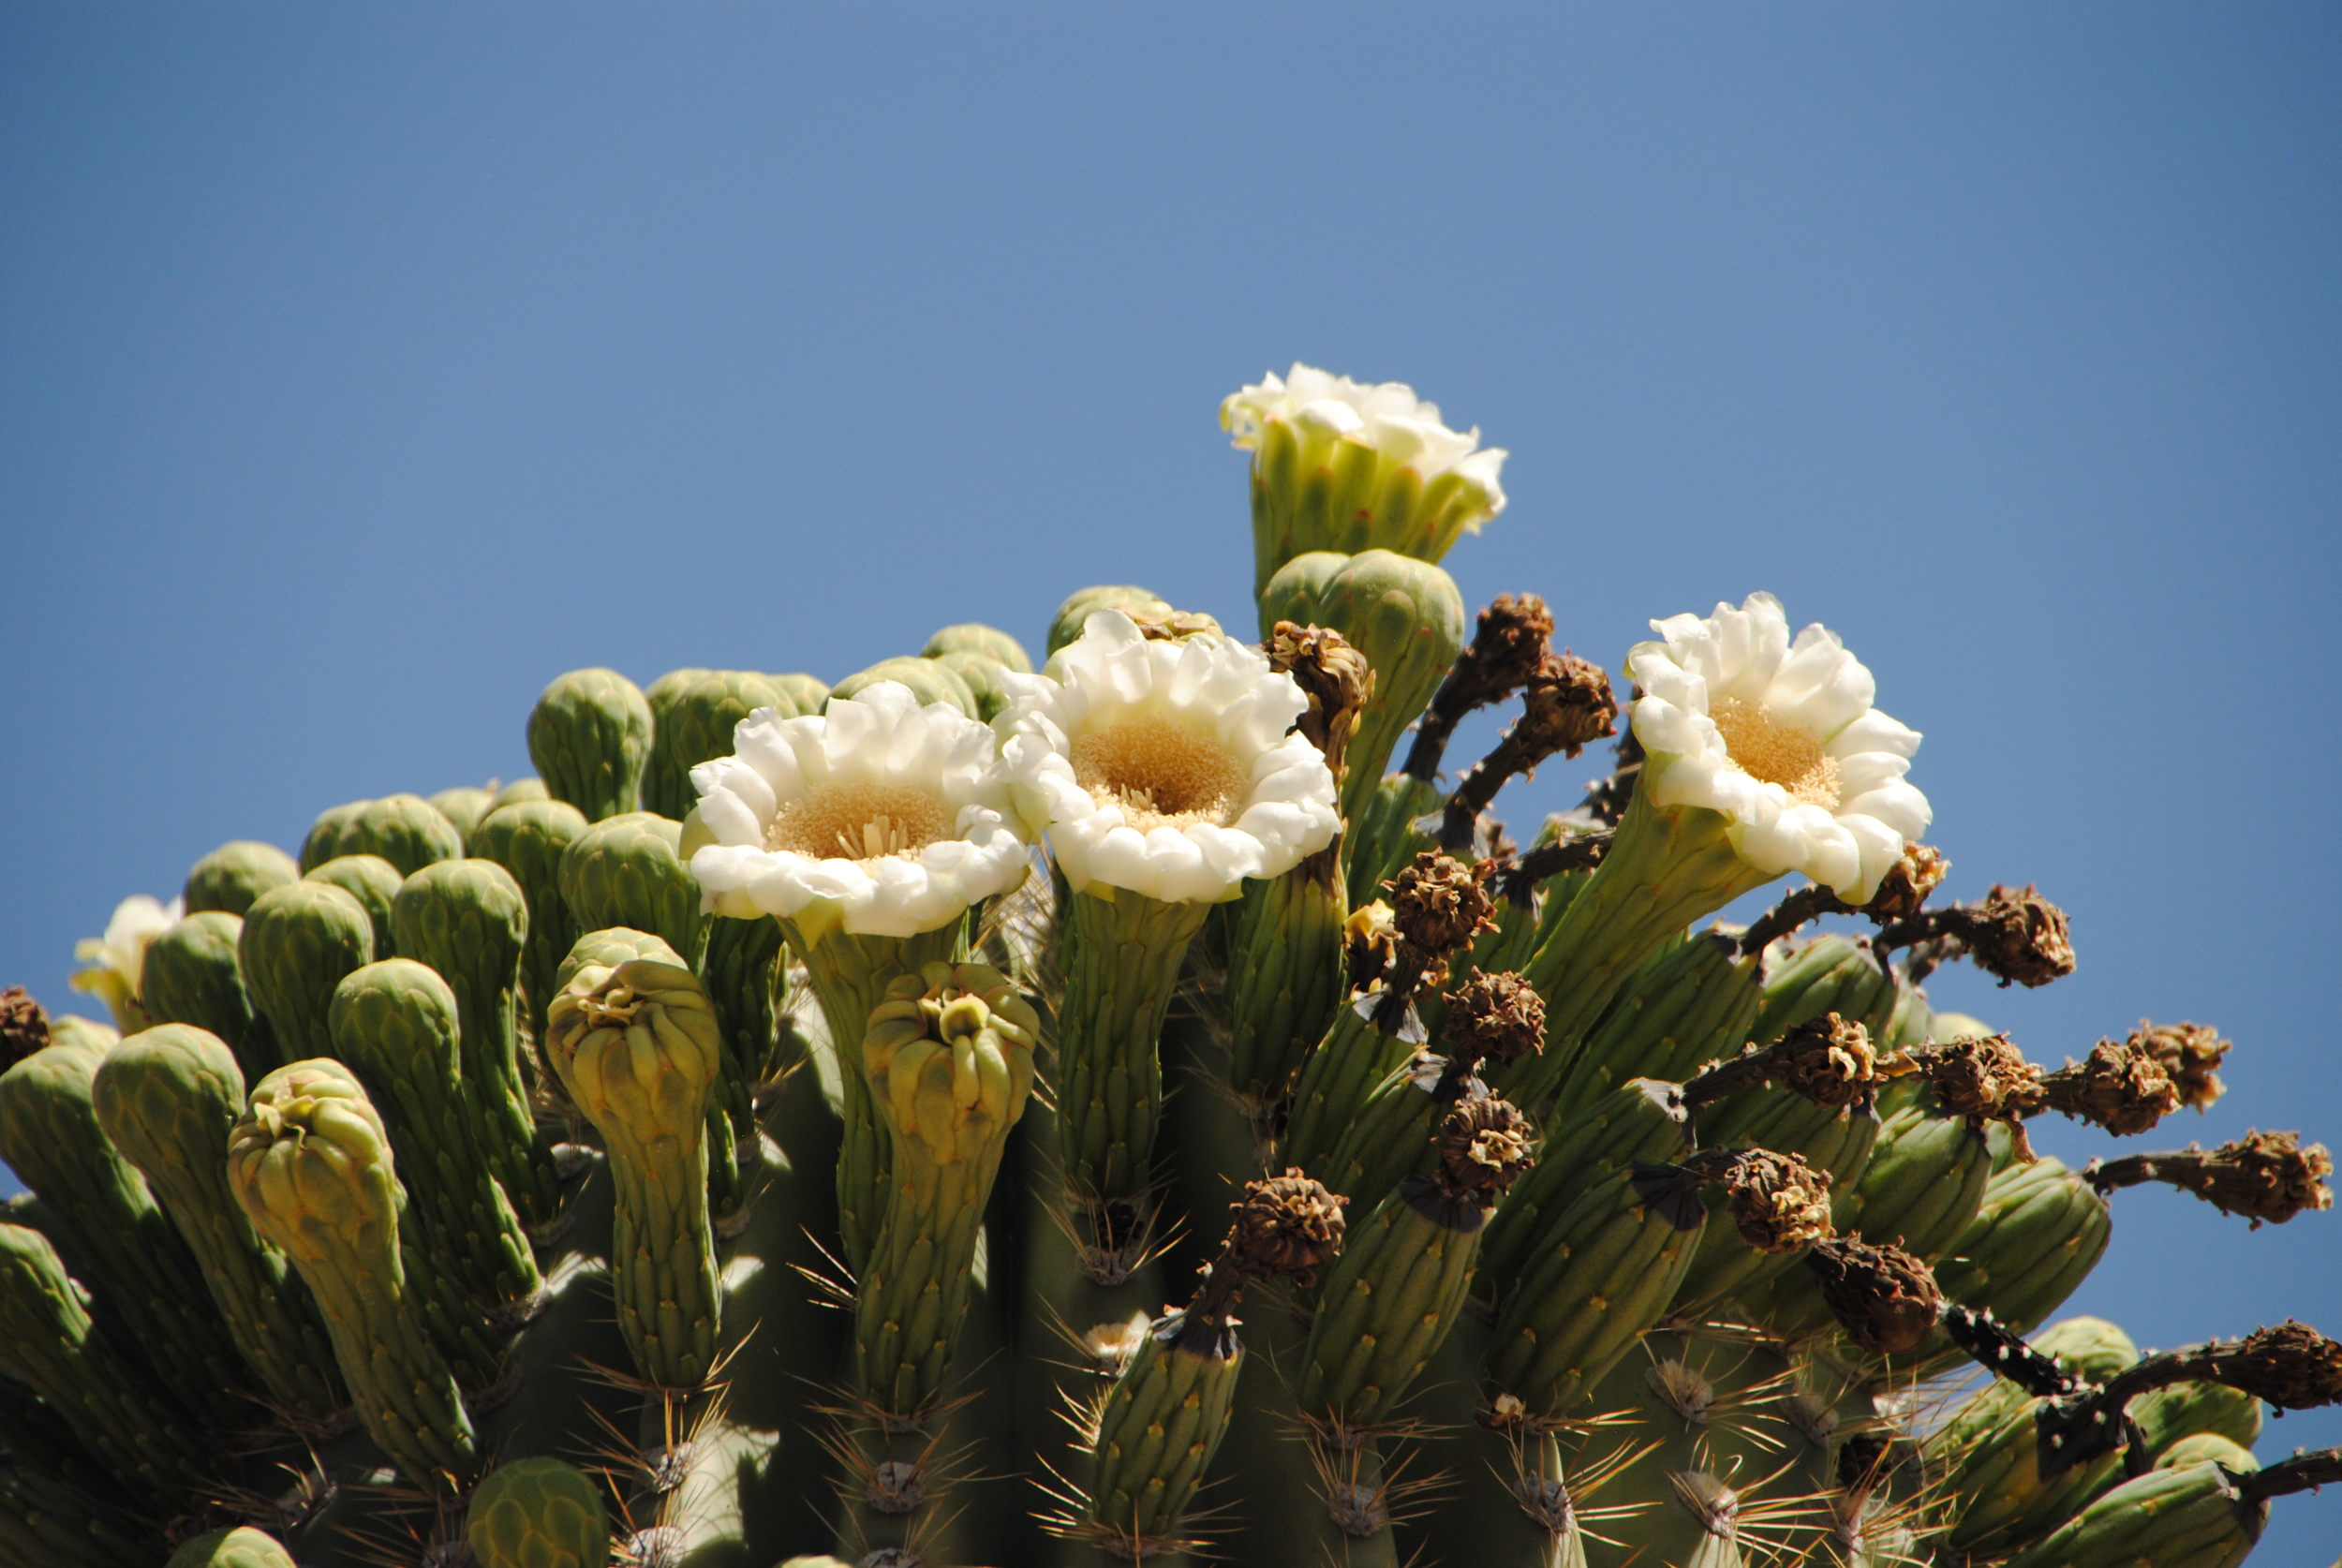 Our visit coincided with the peak flowering of the saguaro cactus.